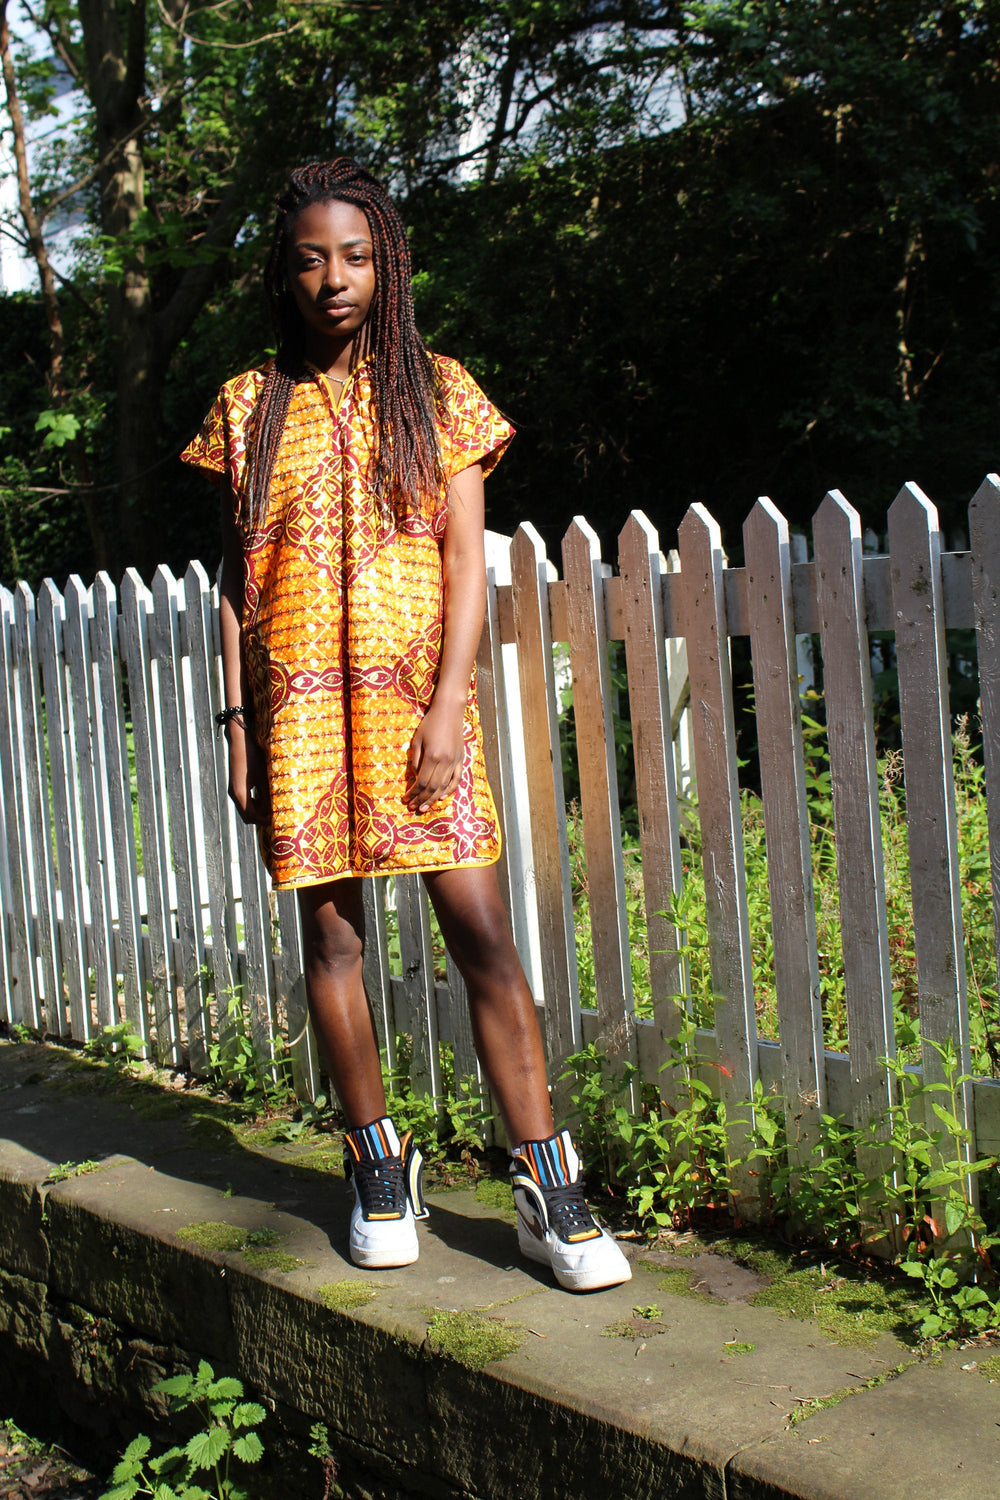 Festival Dress in Orange Gold Ankara Print - Tribal Dress - Continent Clothing